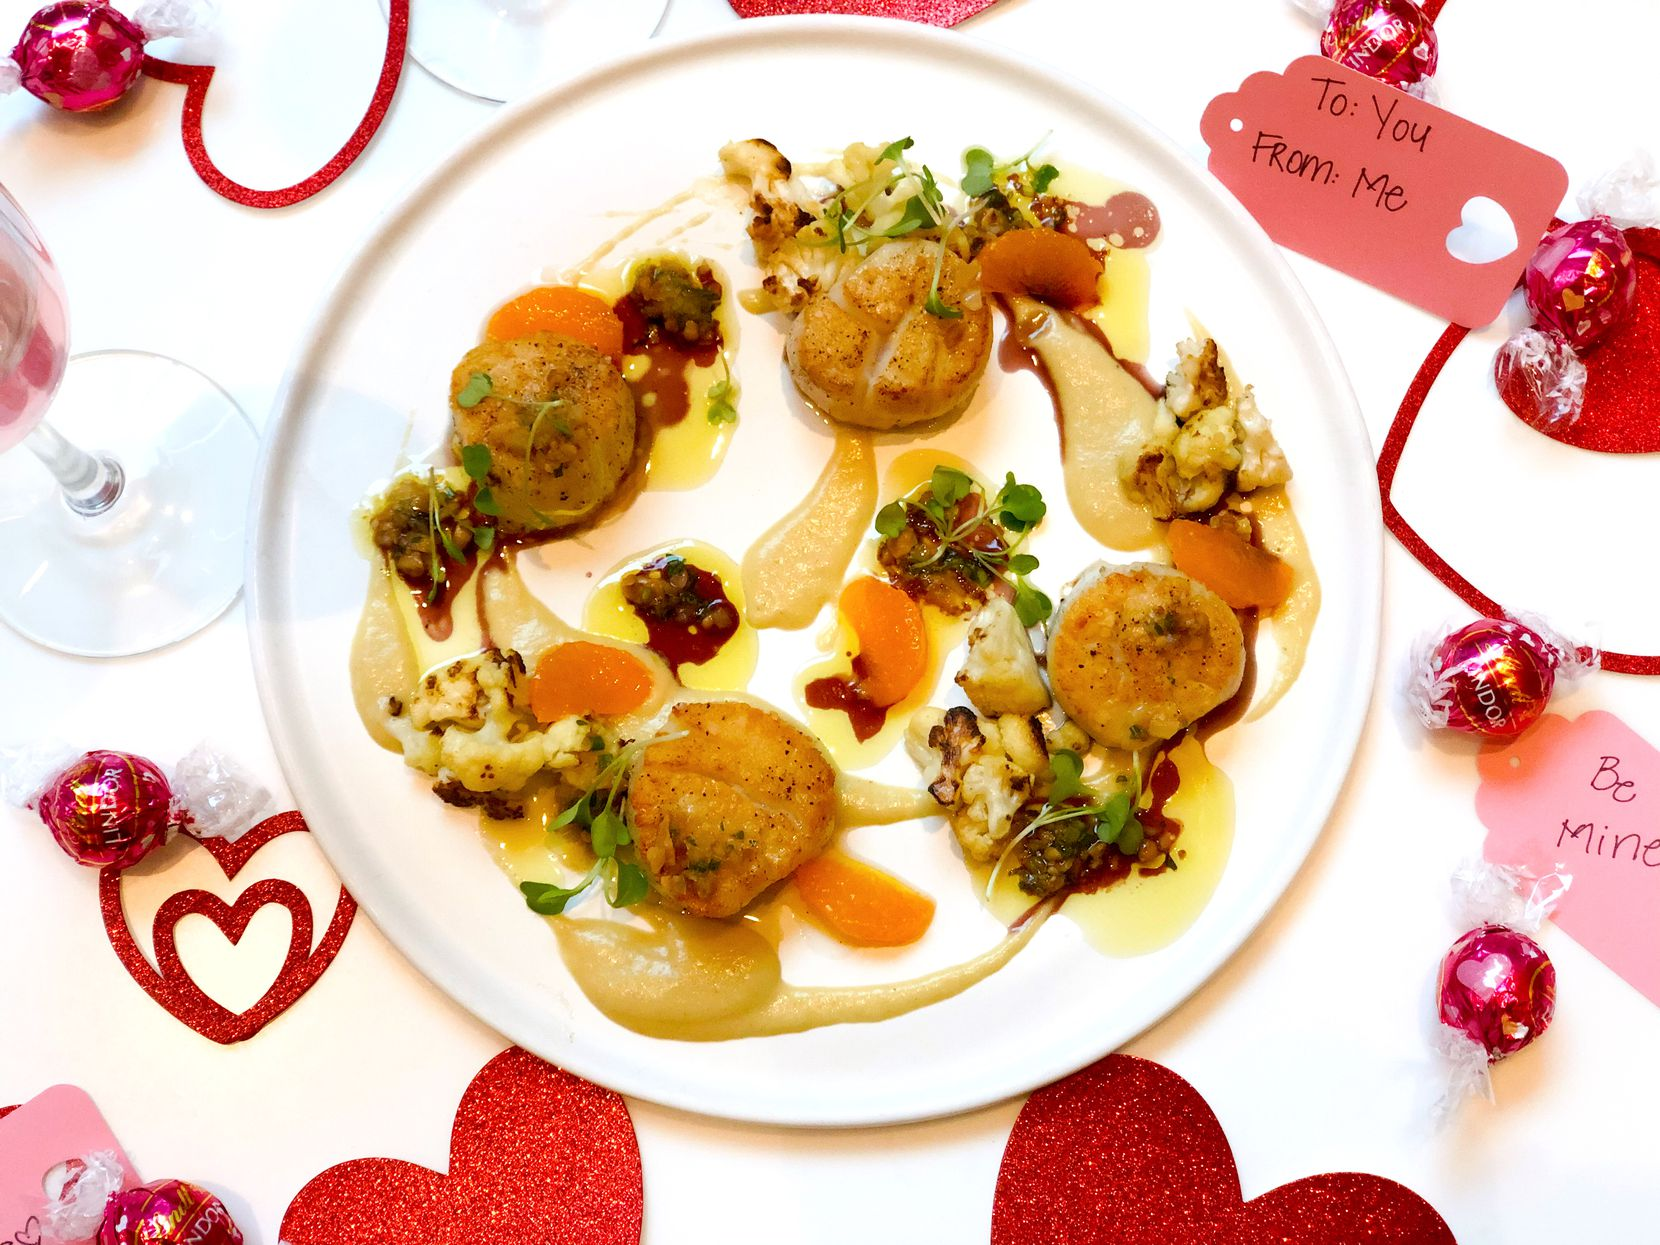 Sloane's Corner offers jumbo scallops served with roasted cauliflower, pine nuts and blood orange vinaigrette as part of its Valentine's Day menu.